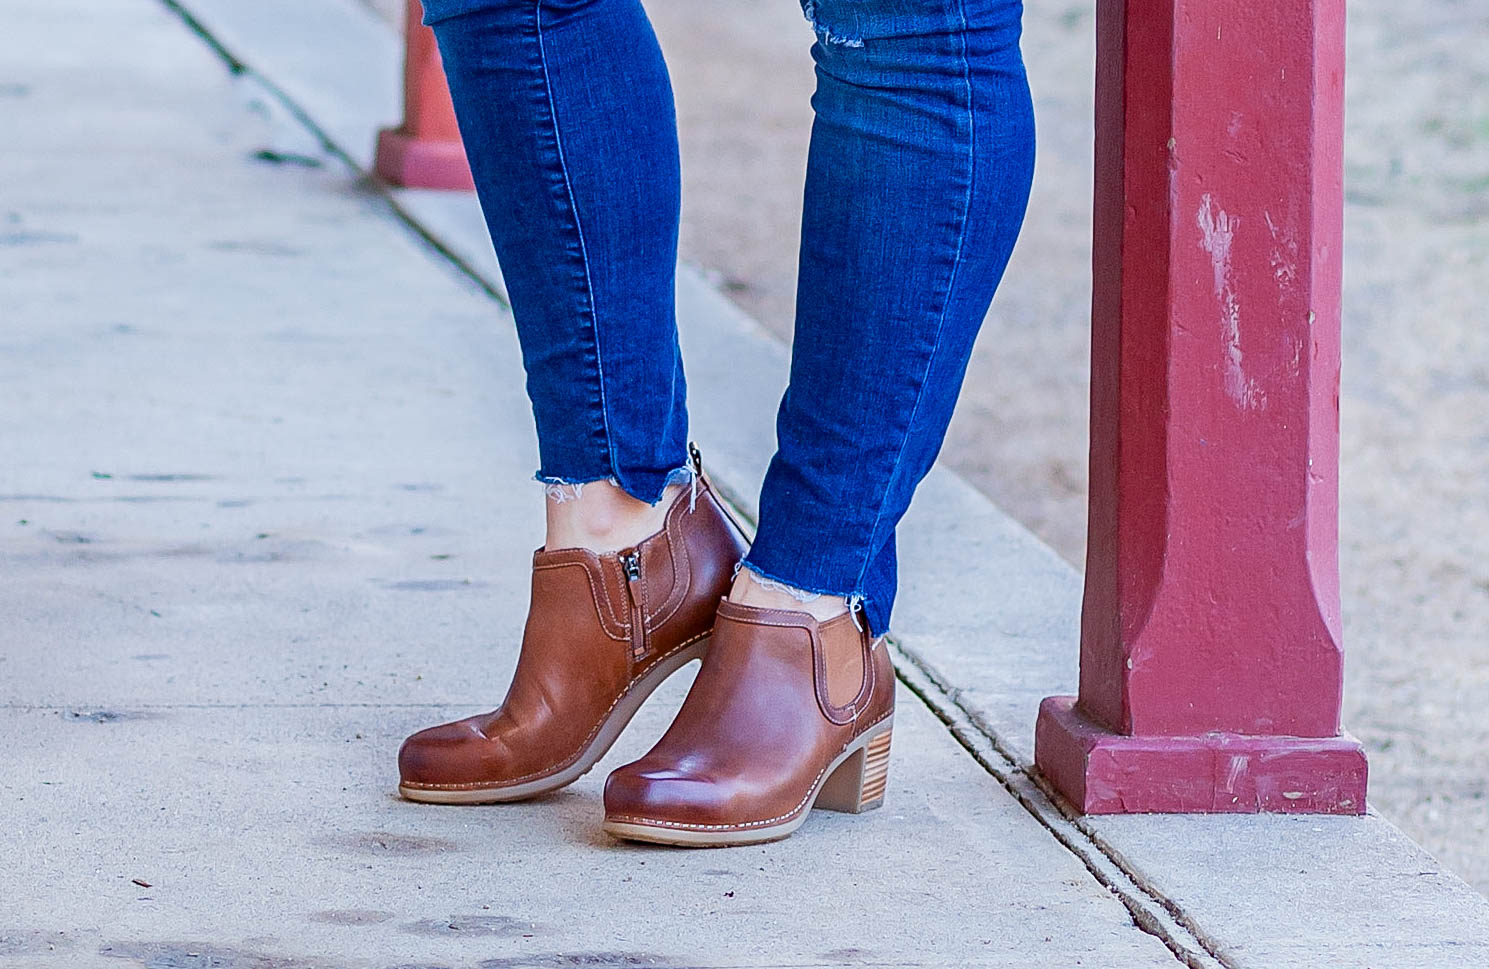 On the search for comfortable boots? These are ADORABLE!